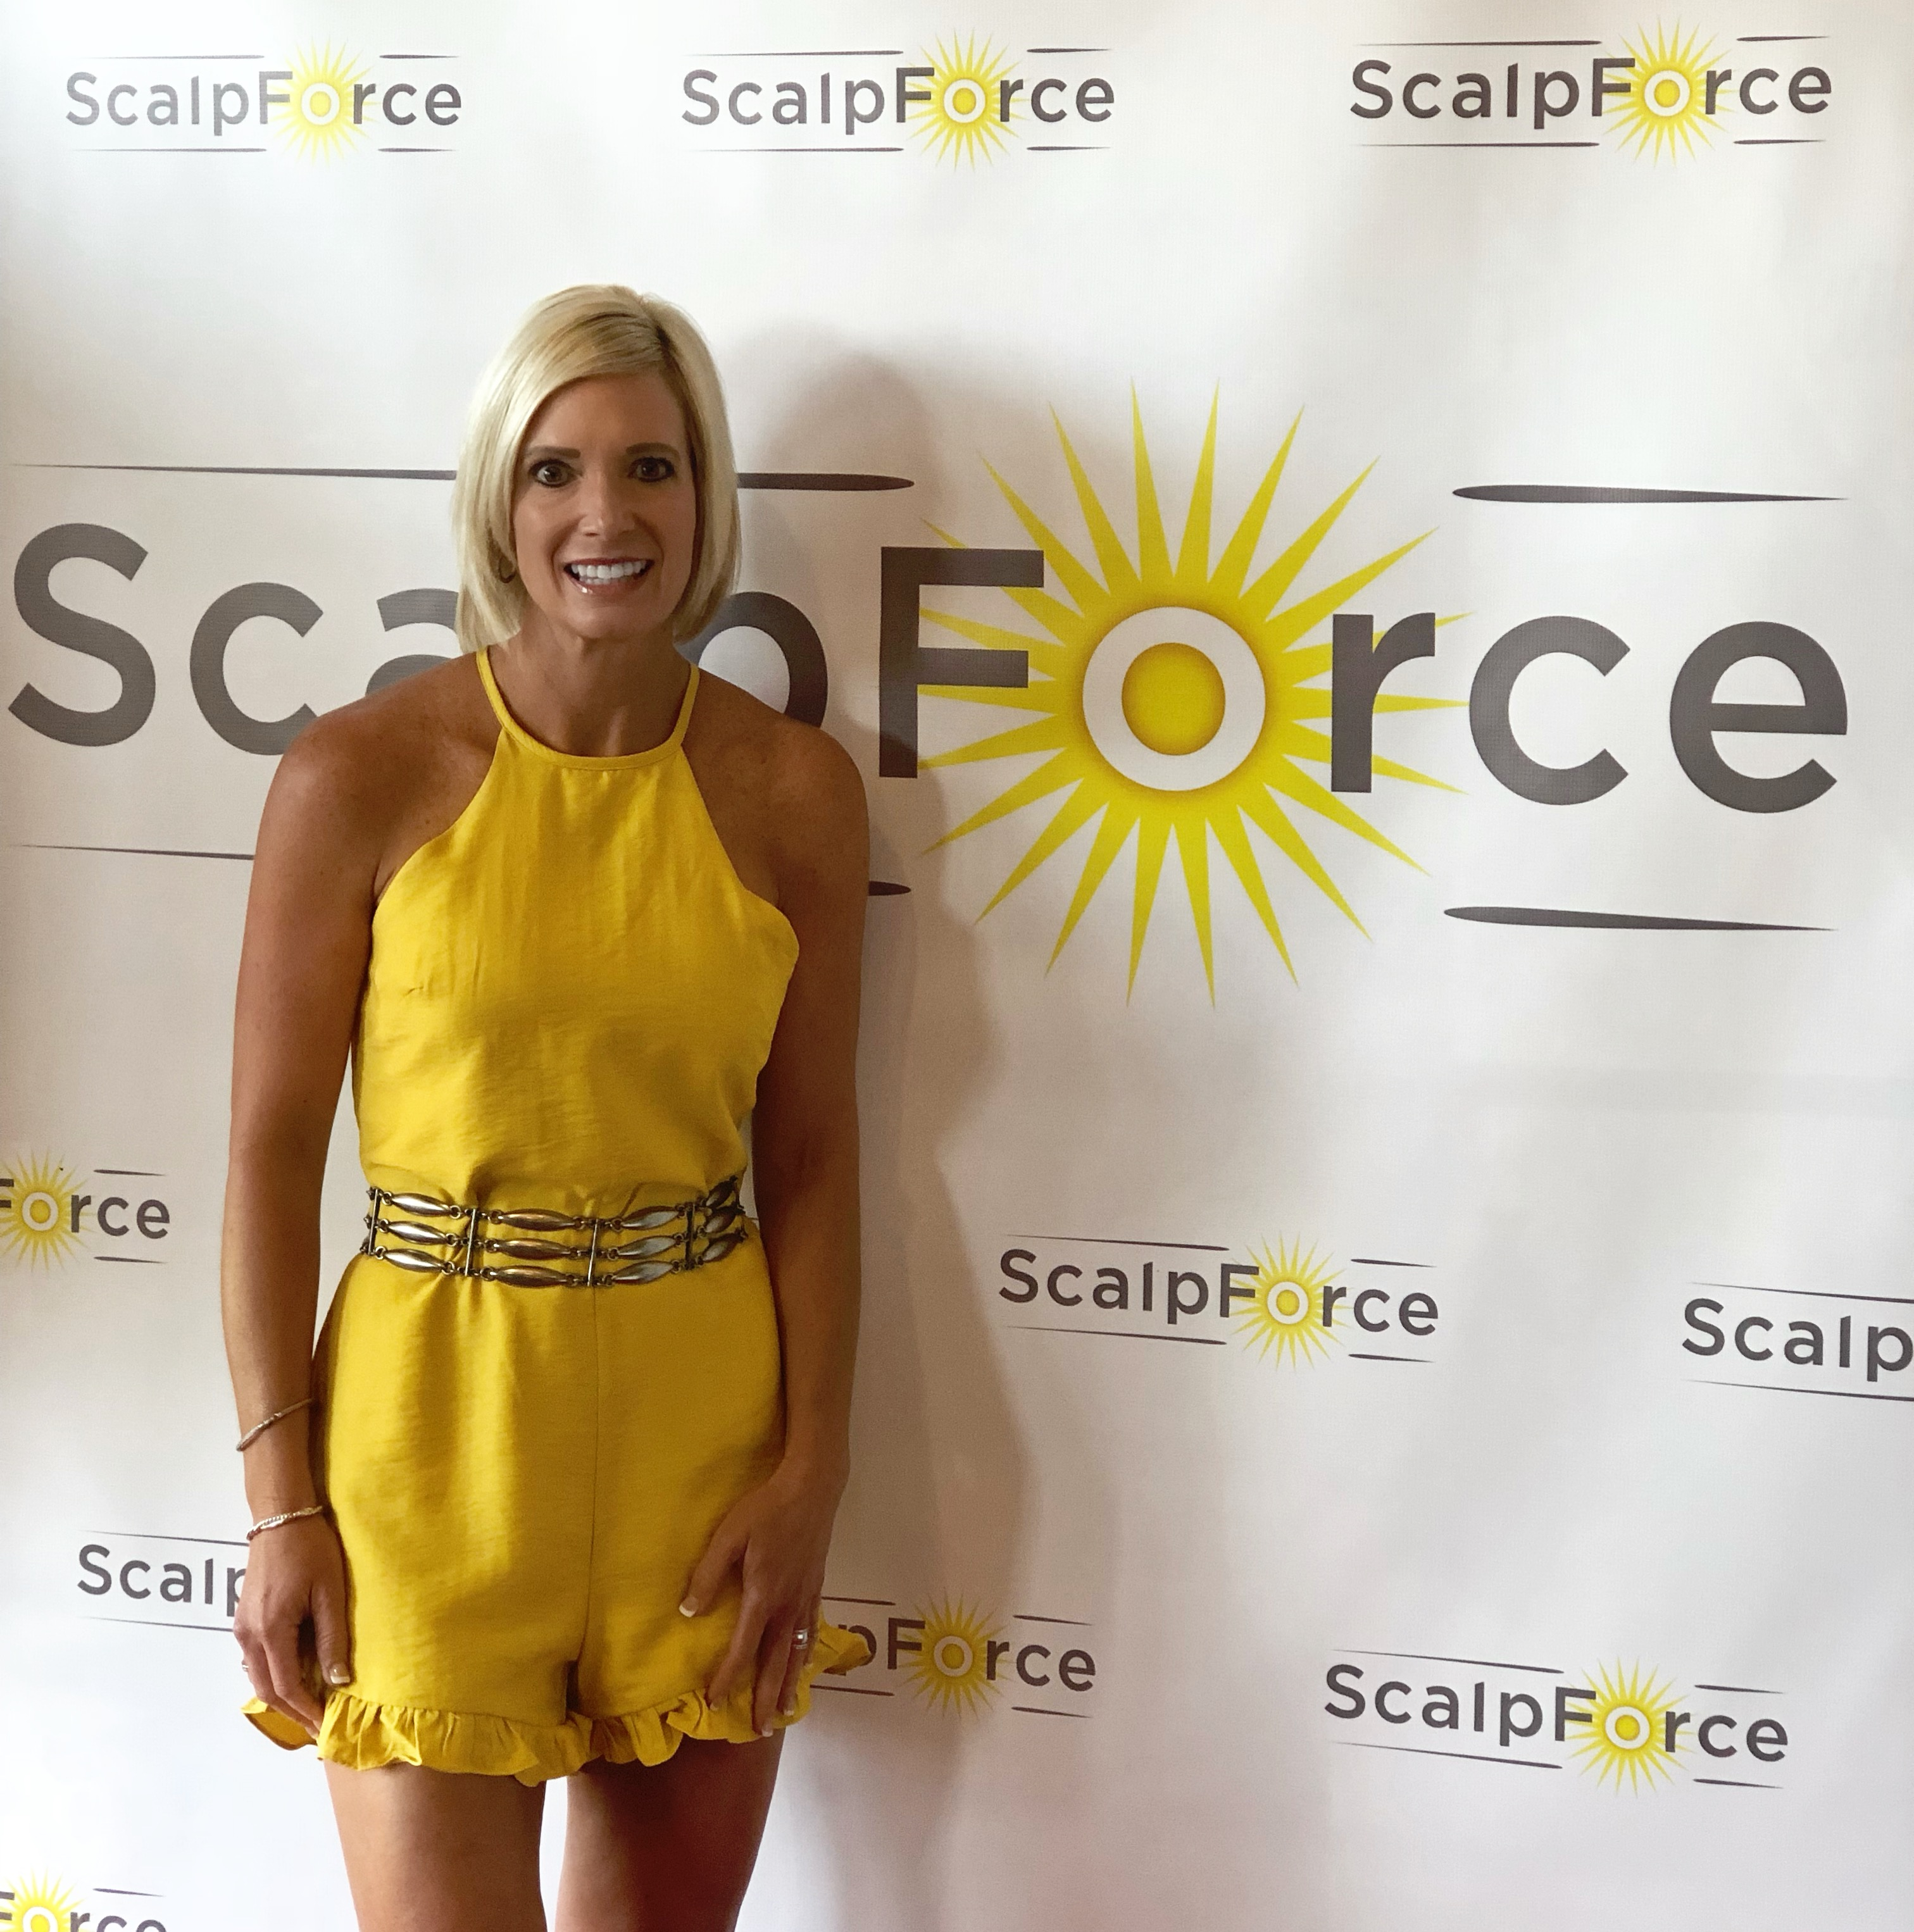 Laurie_LaunchParty - ScalpForce